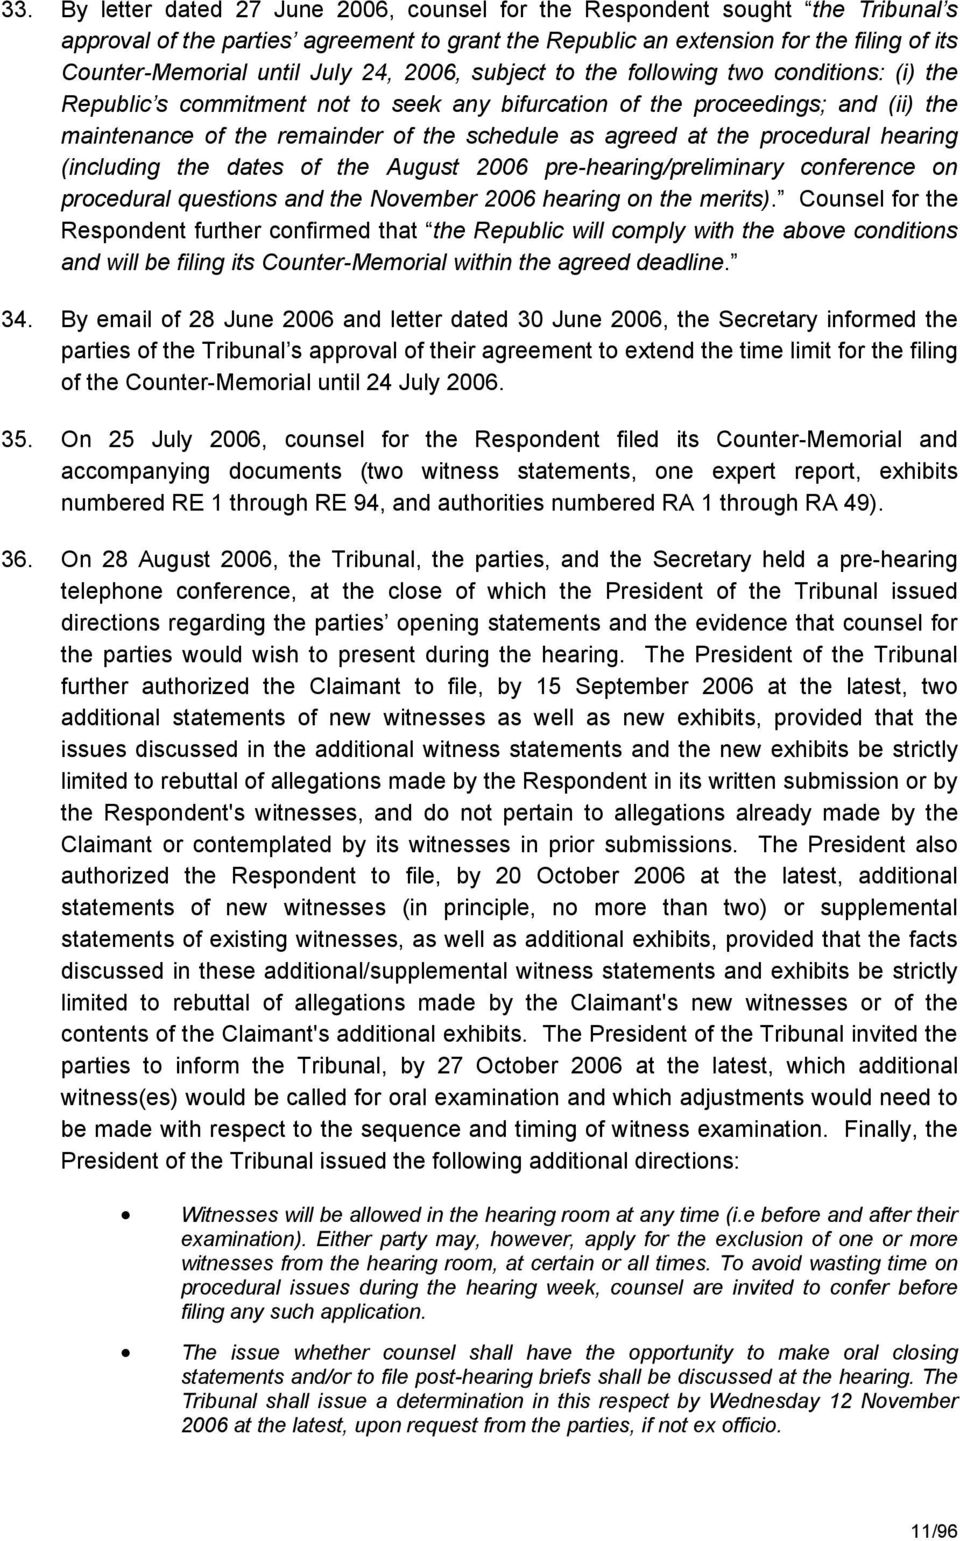 agreed at the procedural hearing (including the dates of the August 2006 pre-hearing/preliminary conference on procedural questions and the November 2006 hearing on the merits).